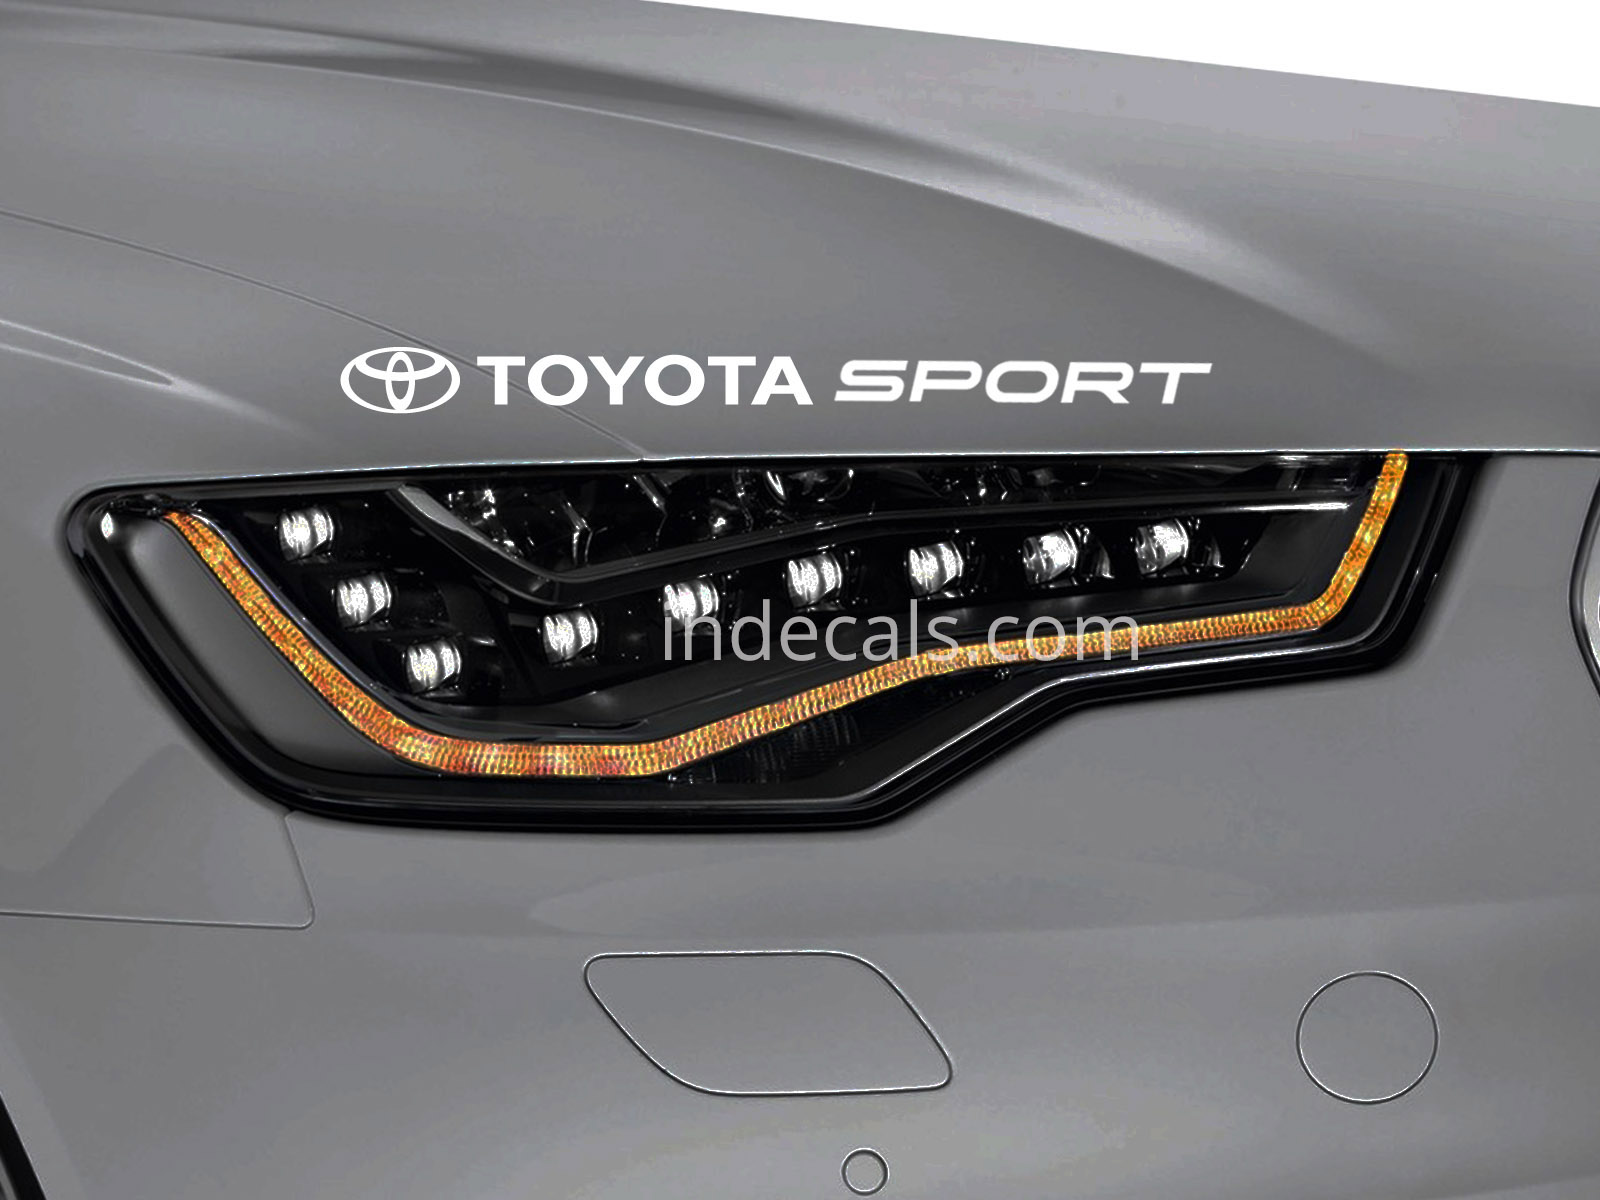 1 x Toyota Sport Sticker for Eyebrow - White